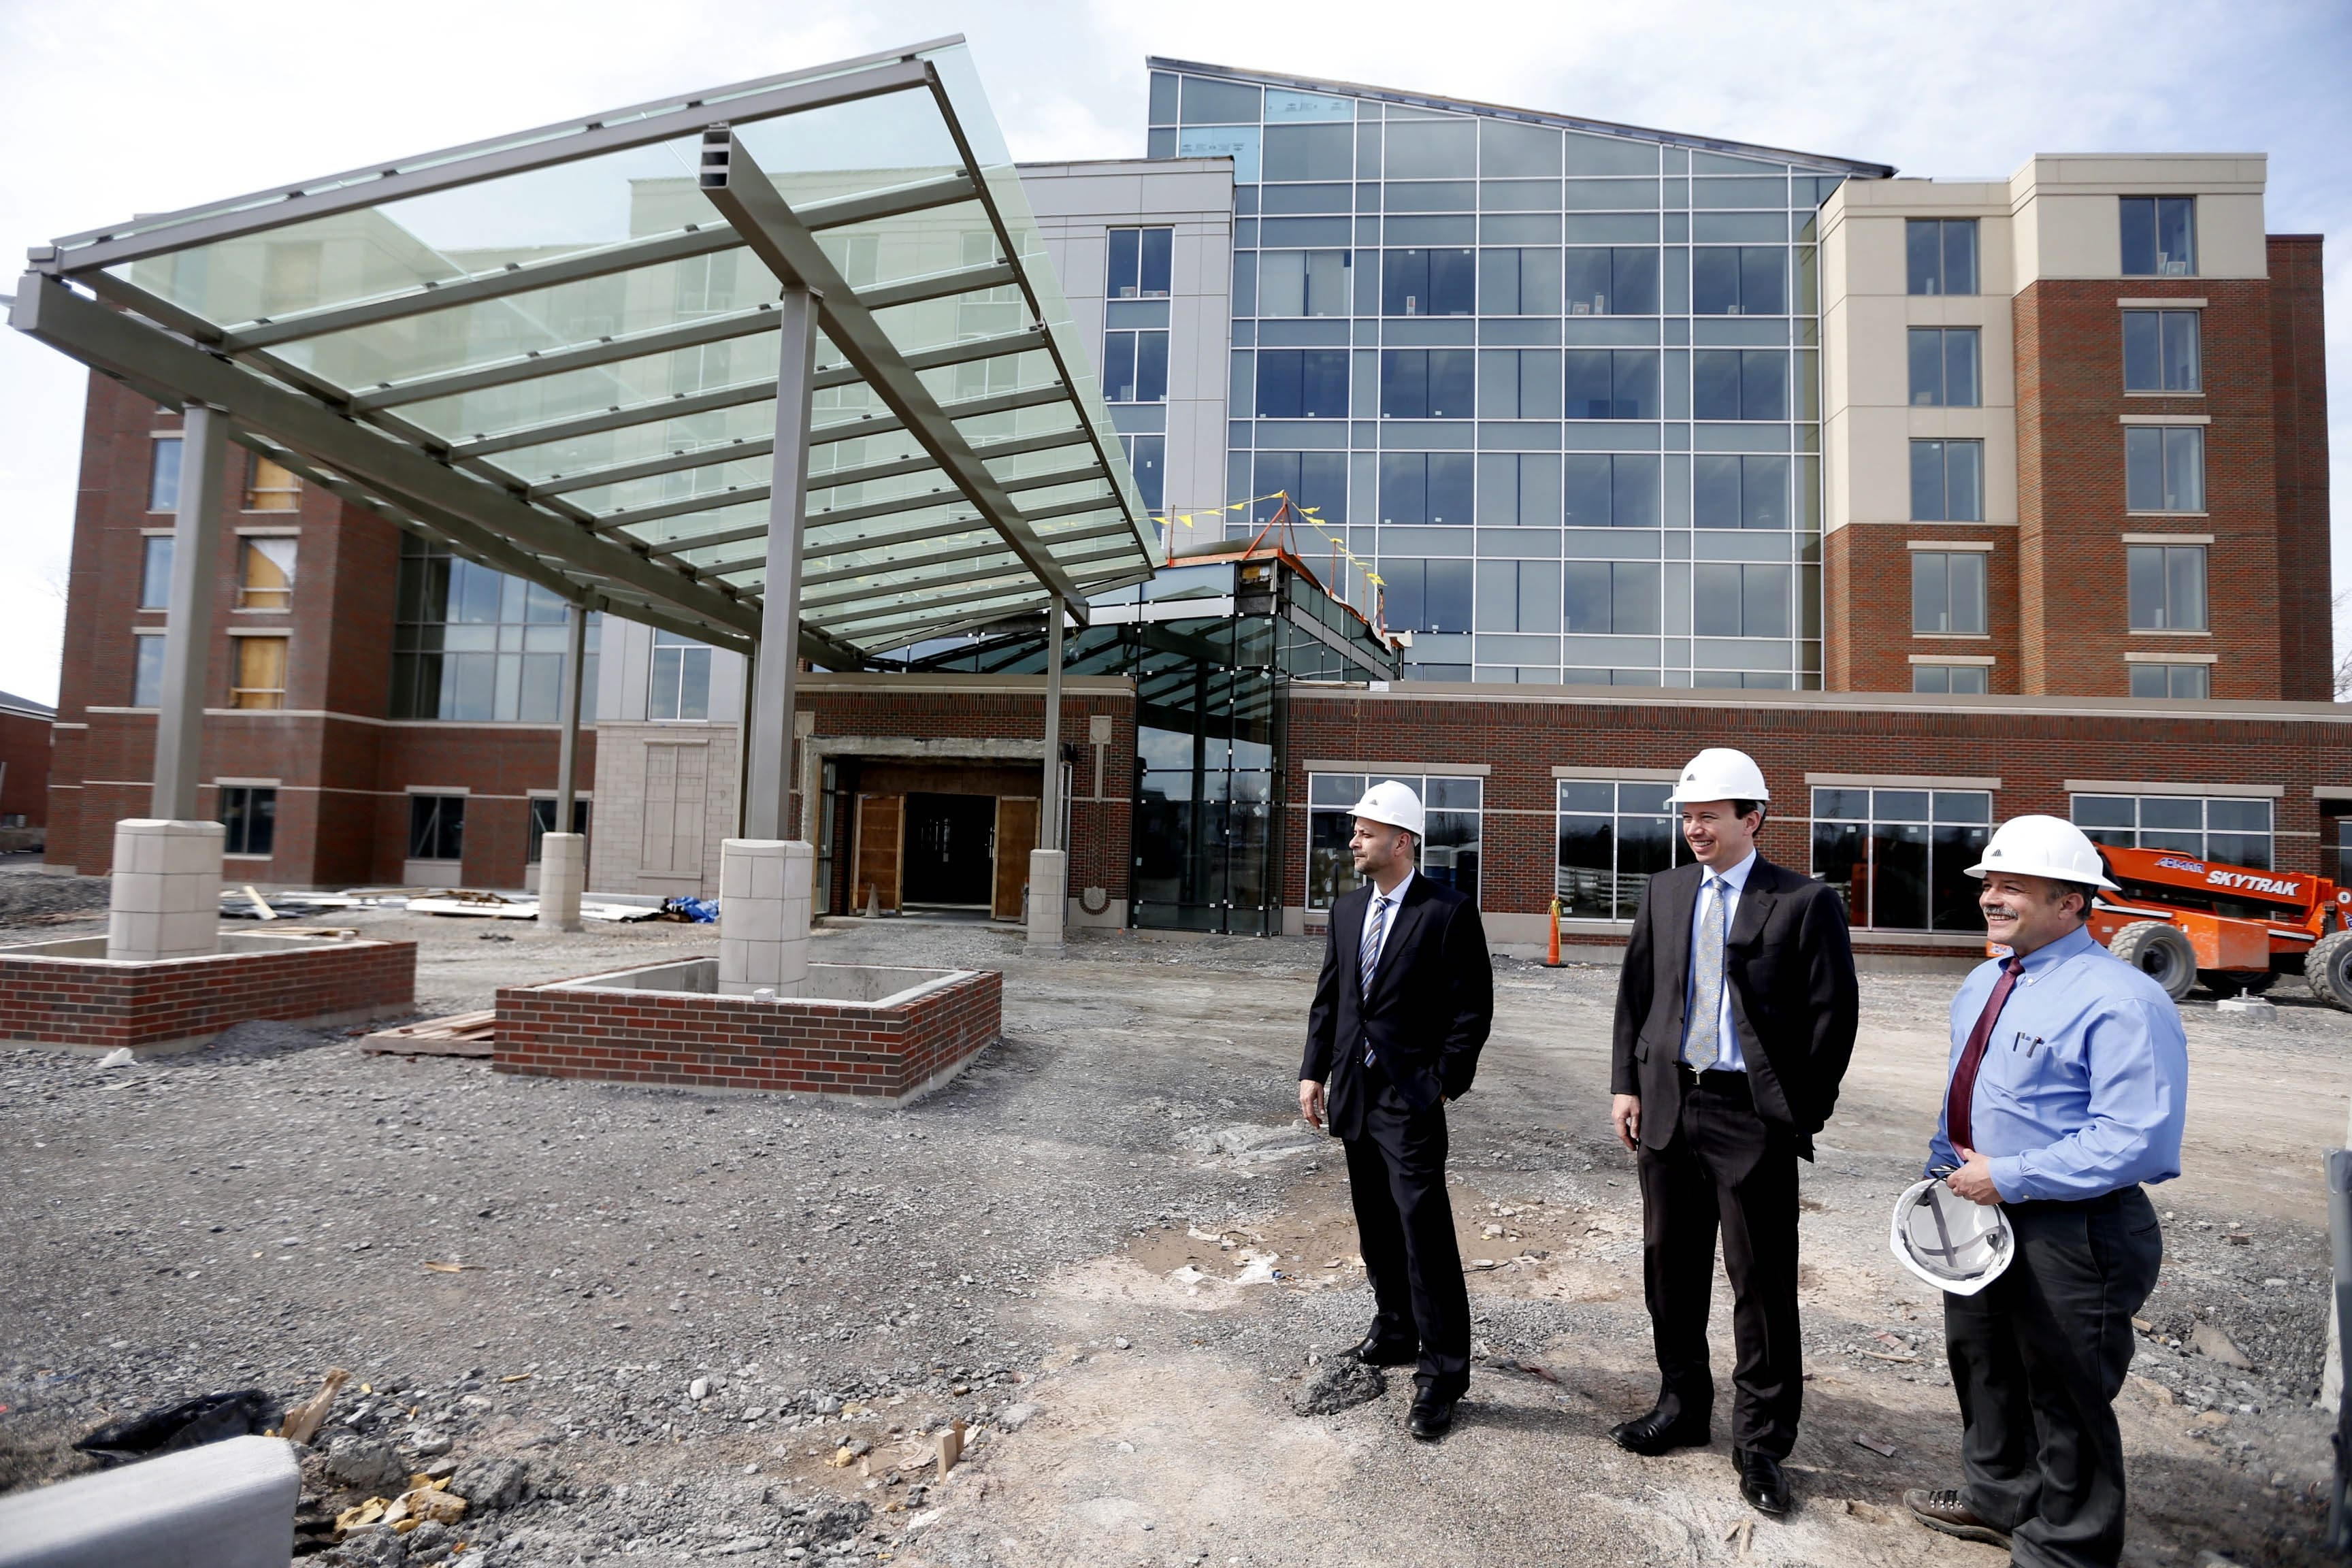 From left, David Chiazza, Executive VP with Iskalo, Paul B. Iskalo, president and CEO and William M. Clark, project manager, during a tour of the new Hyatt Place Amherst property near the the old Lord Amherst Hotel on Main St. in Amherst on Monday, April 13, 2015.  (Robert Kirkham/Buffalo News)